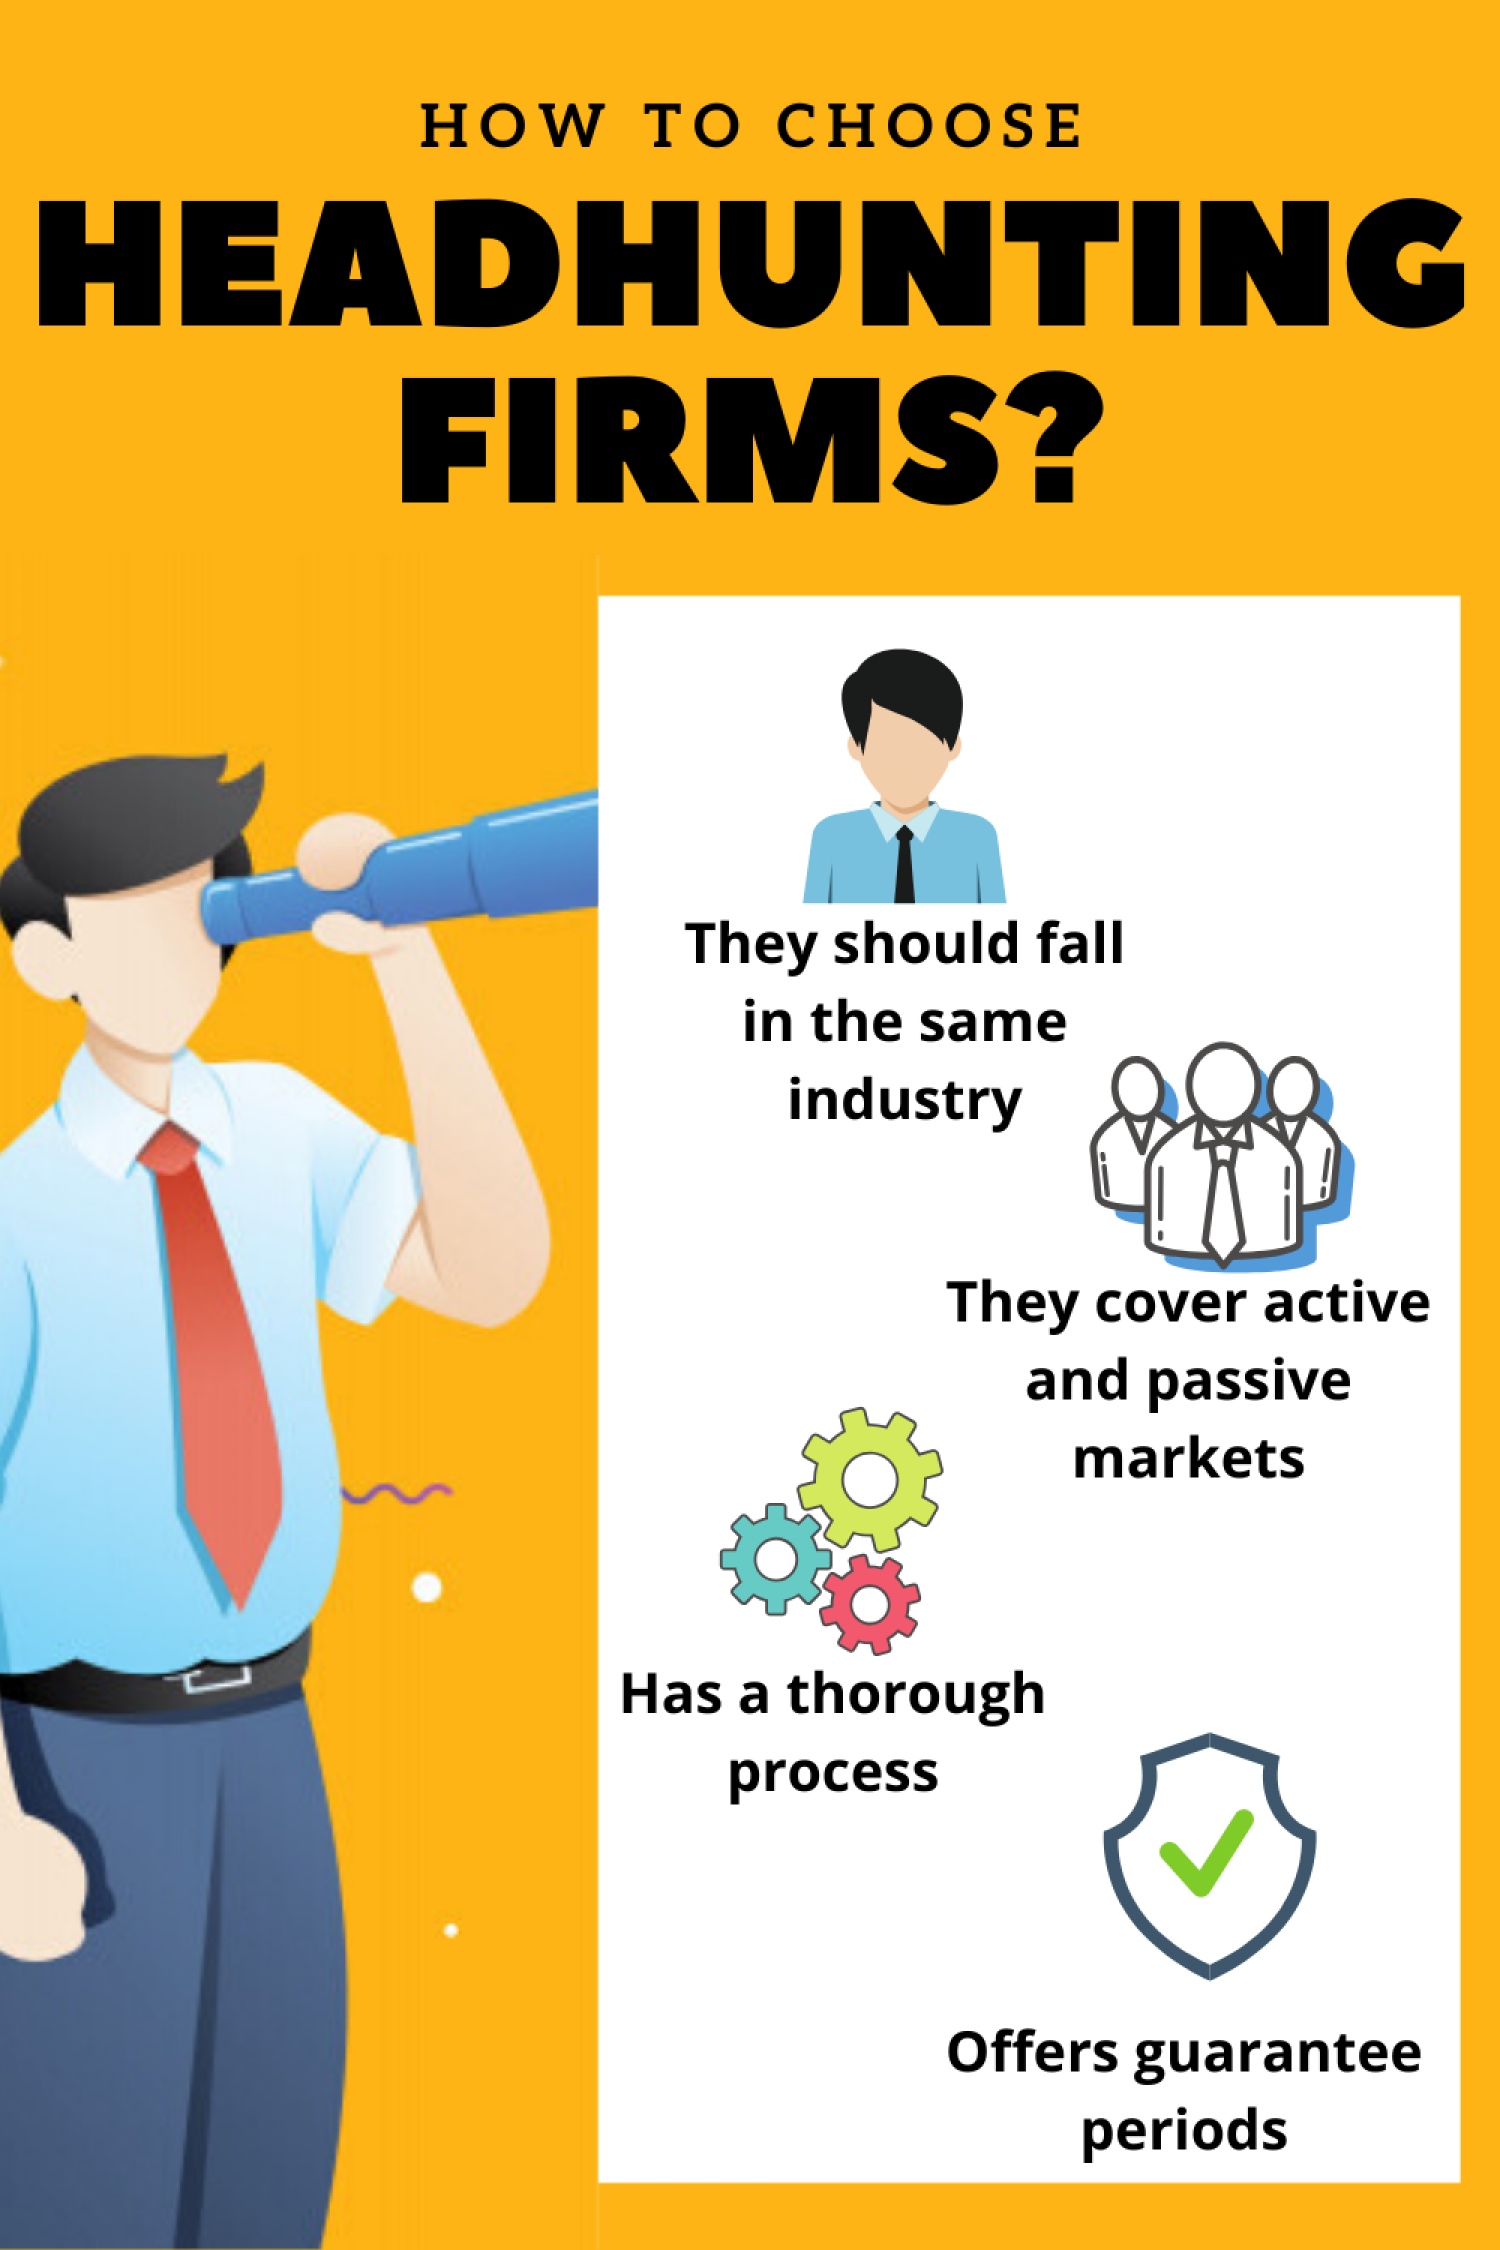 How to Choose Headhunting Firms? Infographic